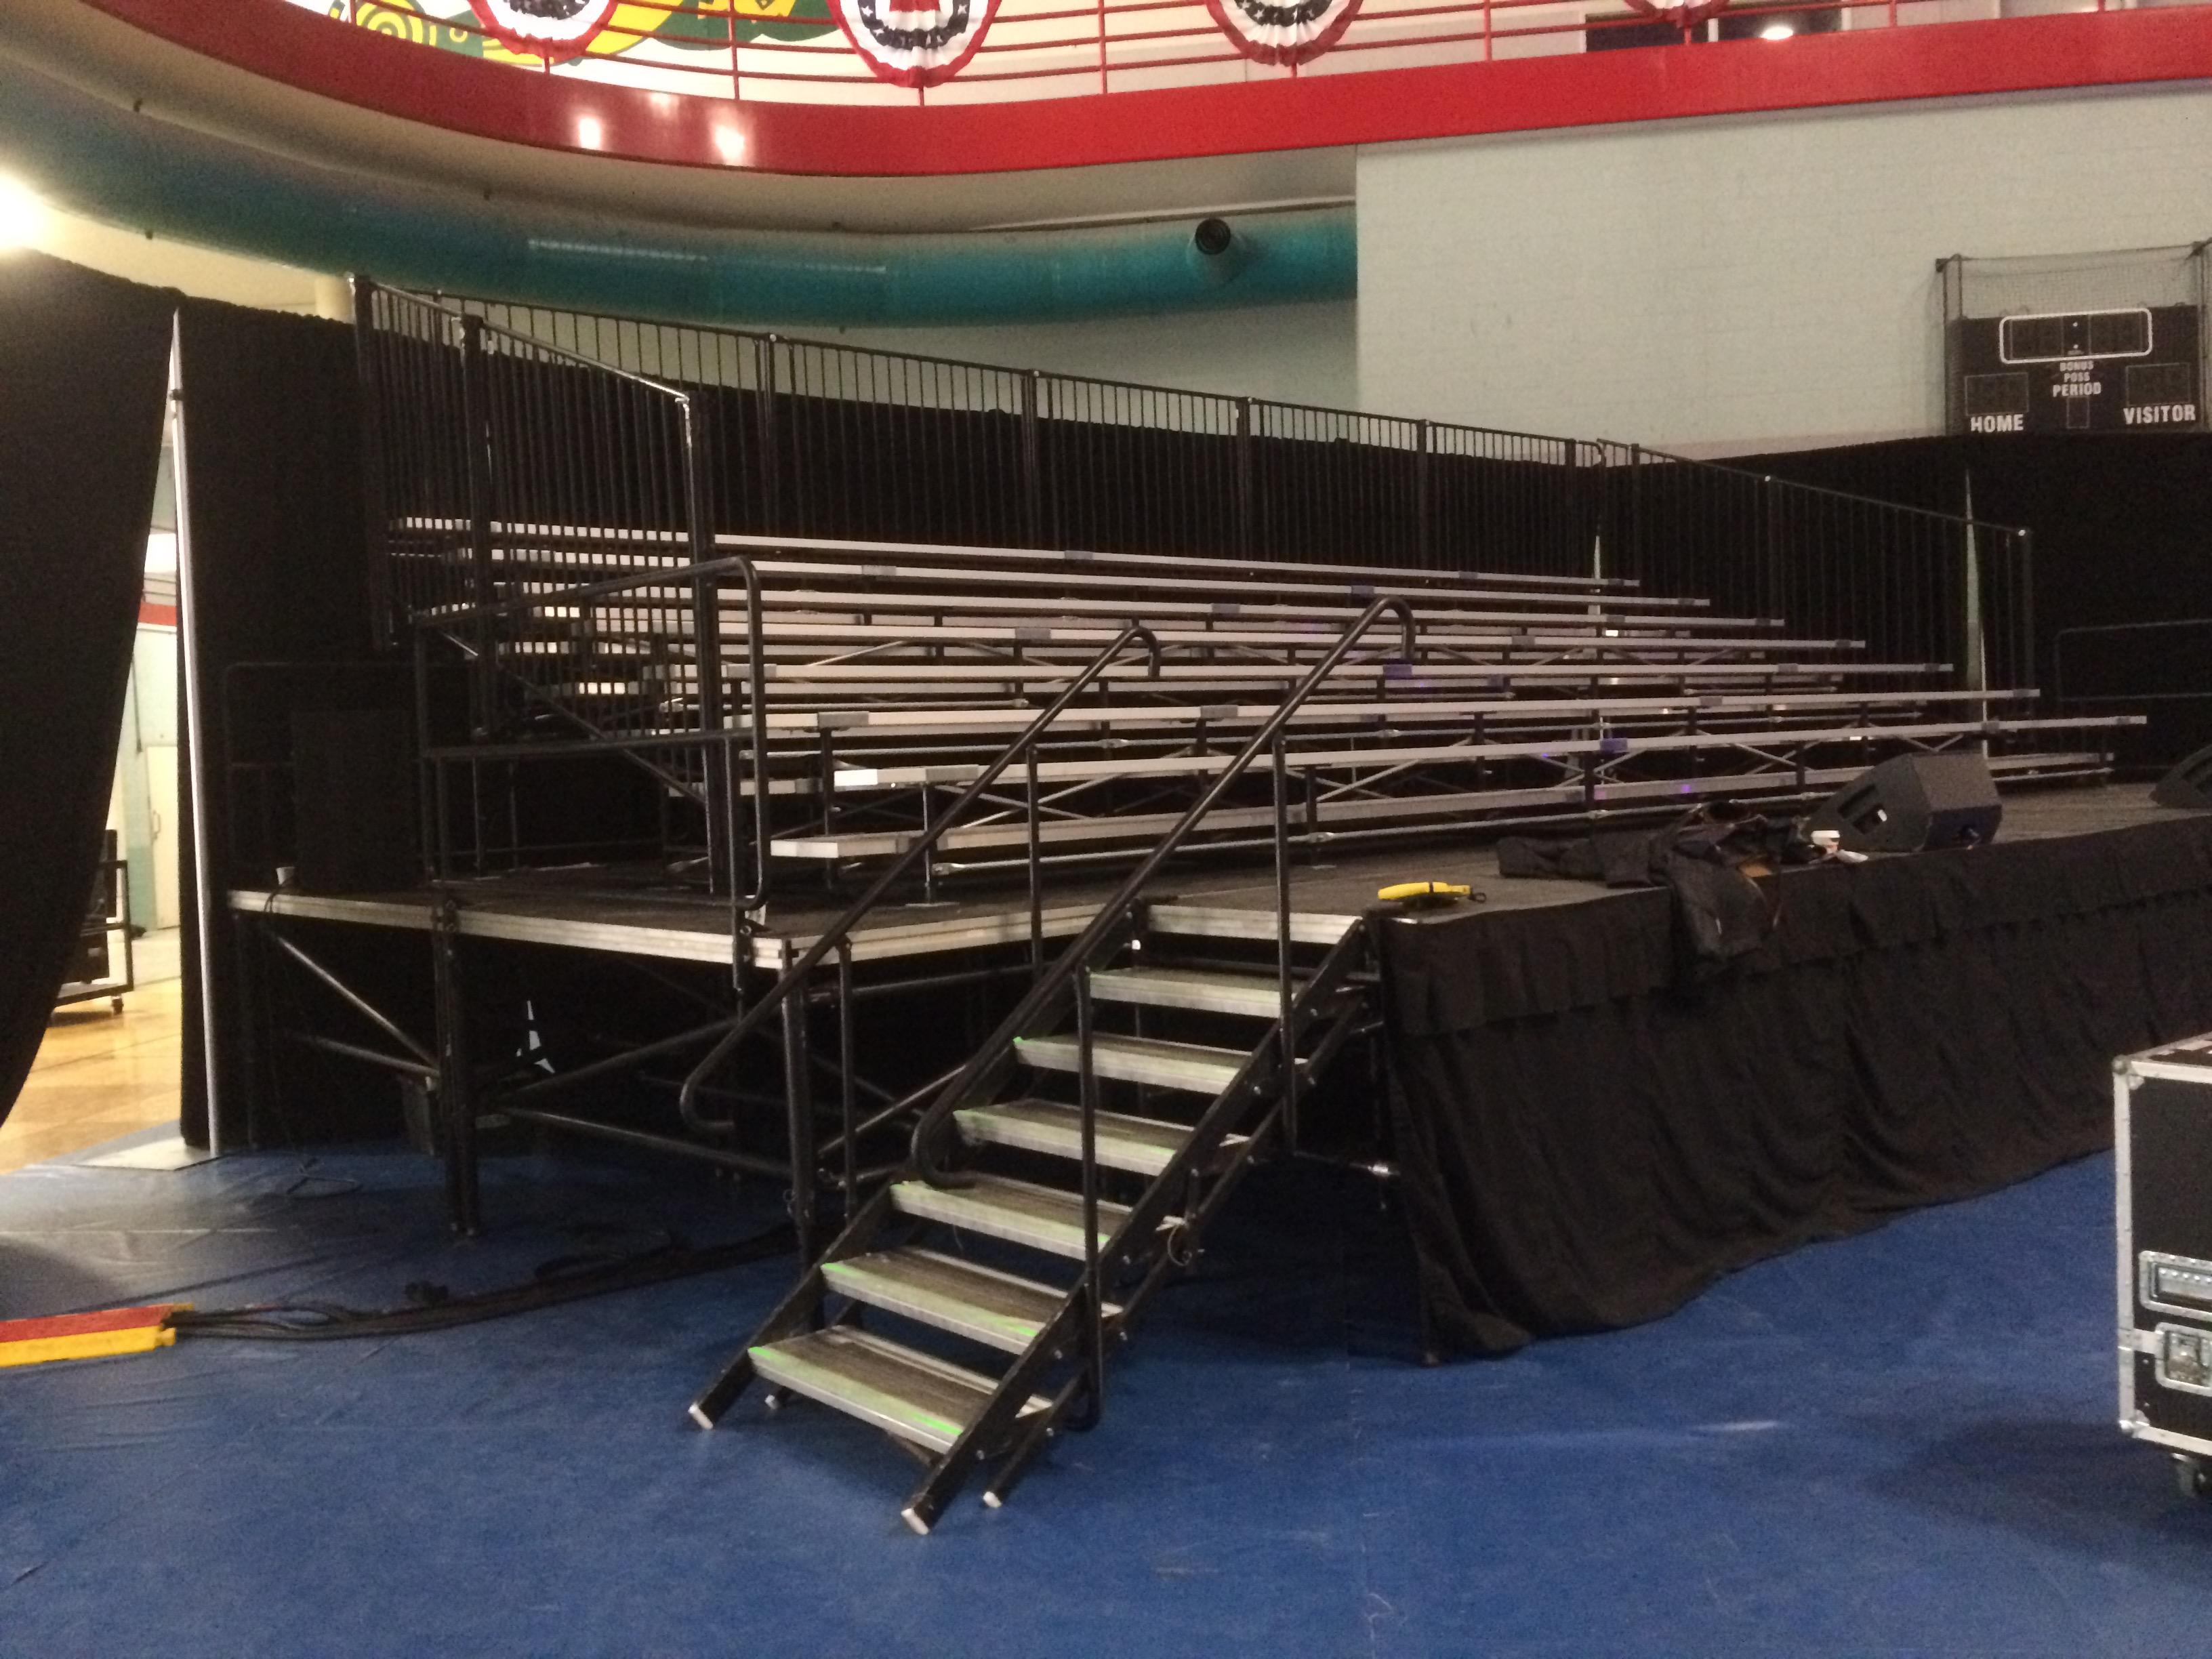 Elevated 7-row x 32′ long granite bleacher seats 168 with no aisle political event